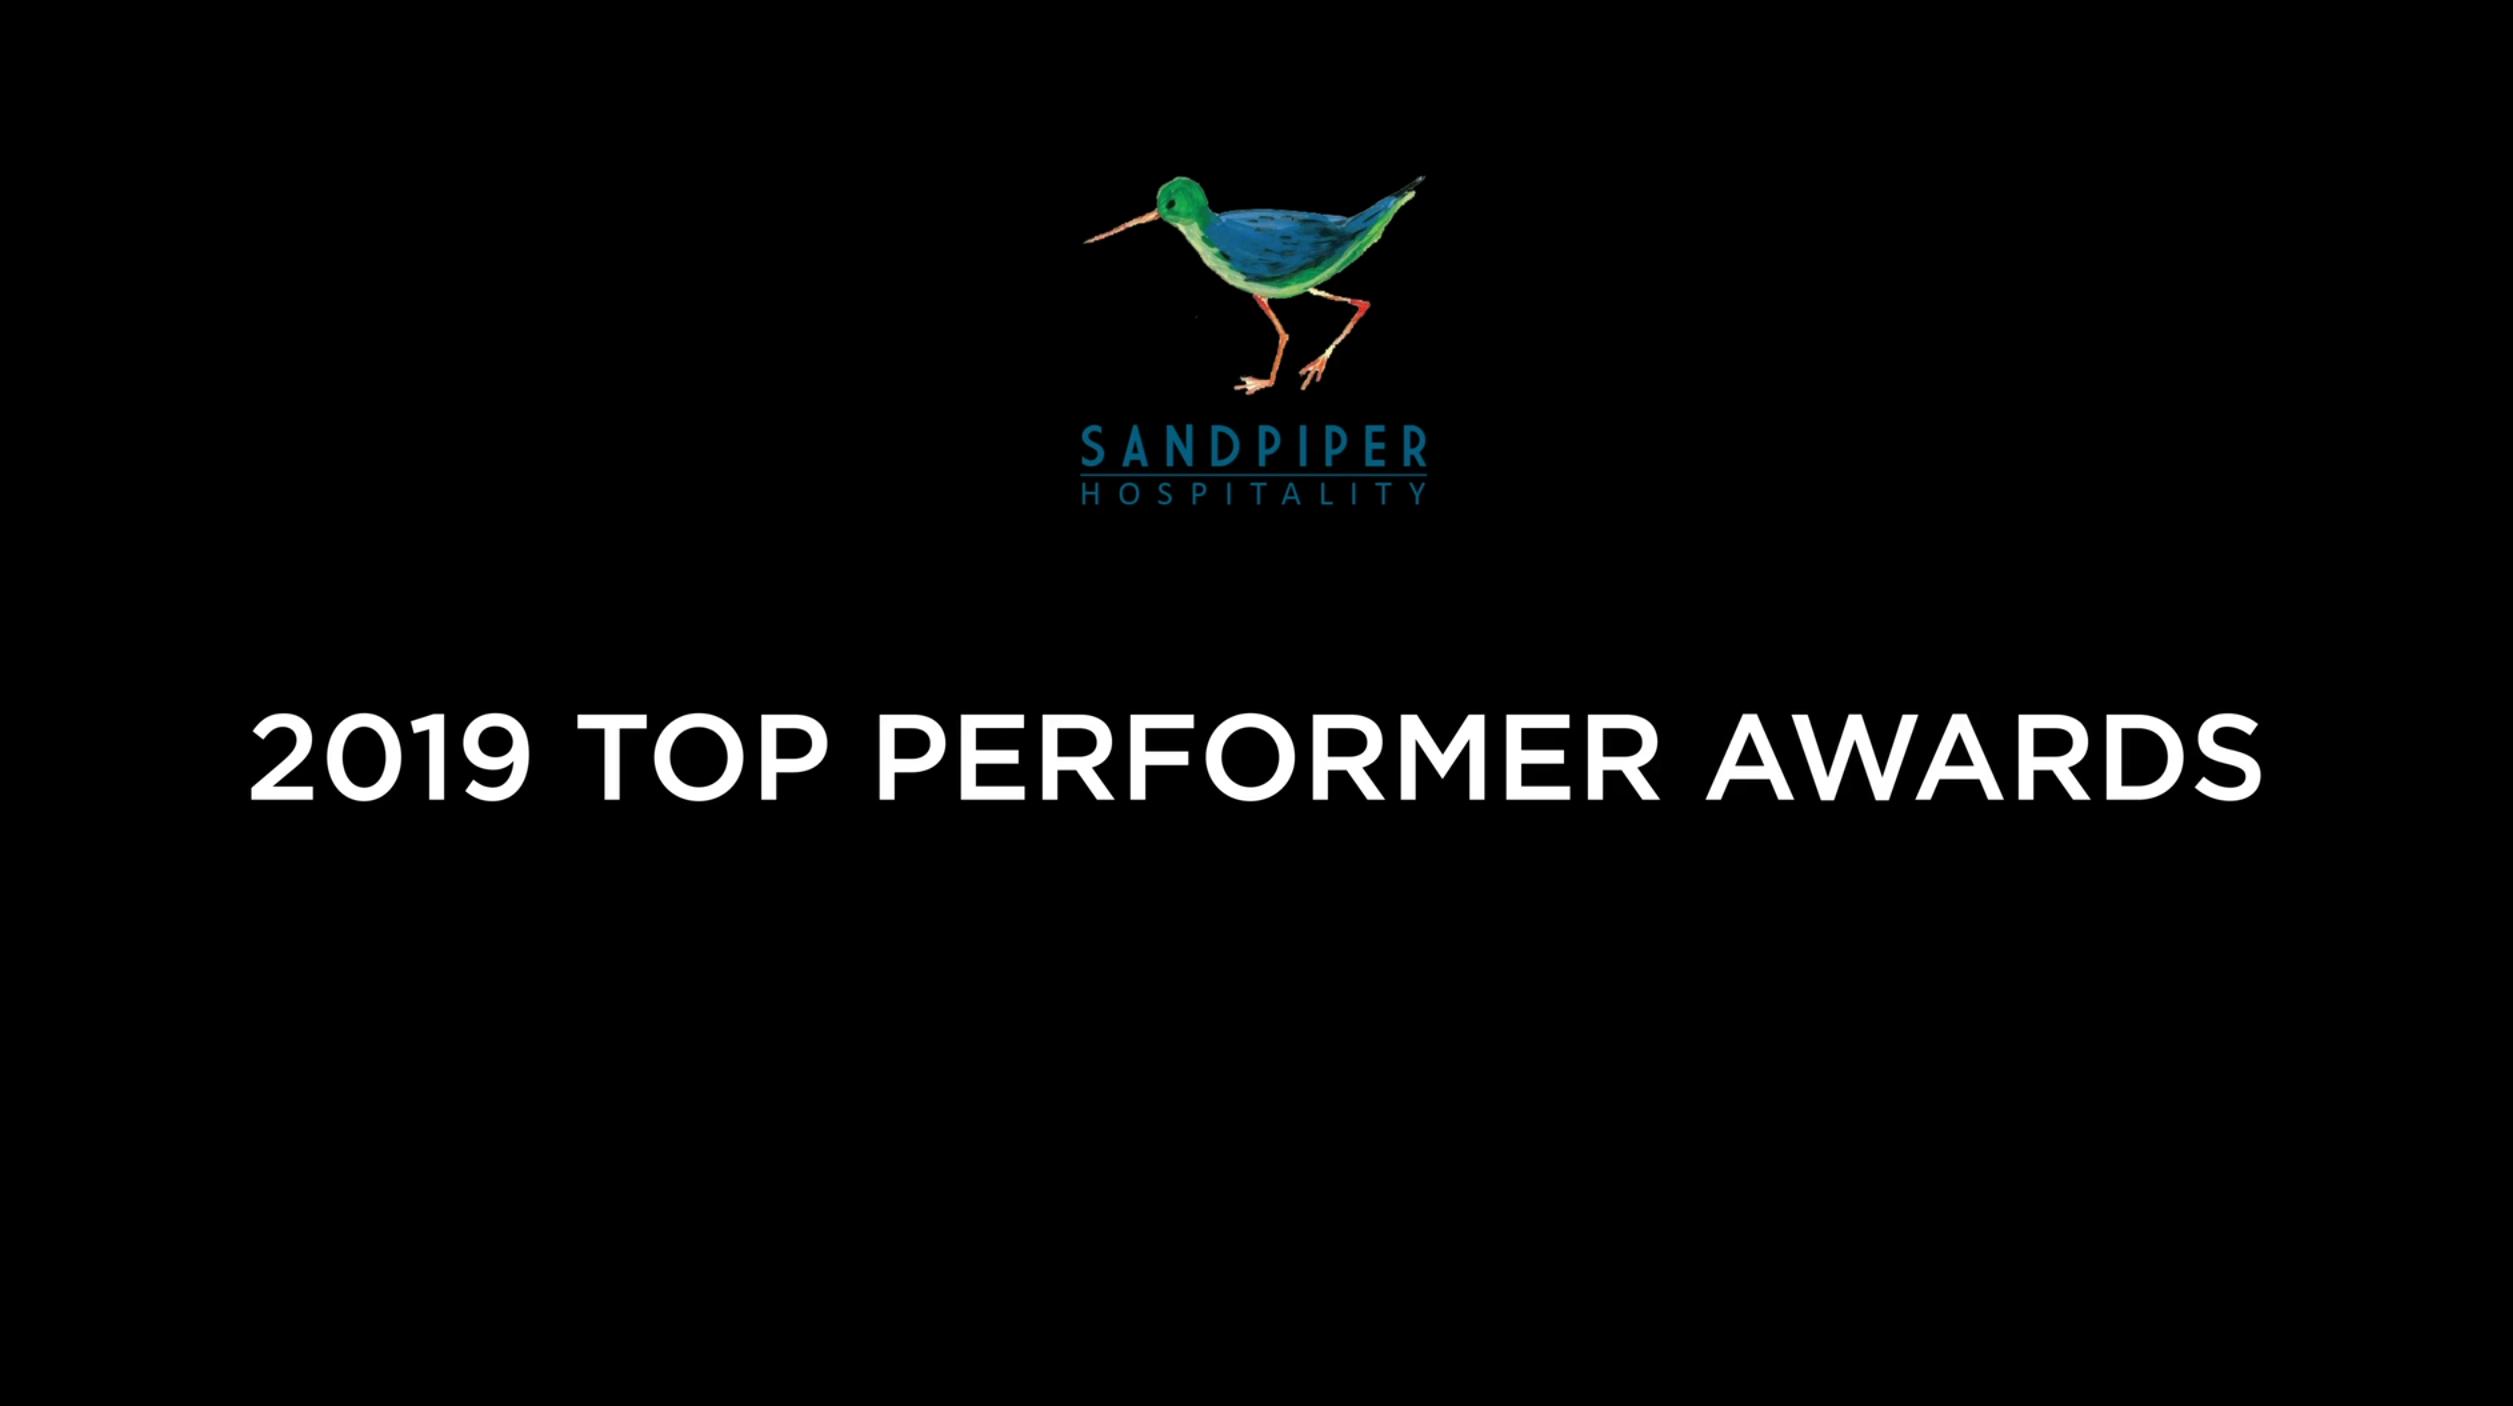 sandpiper awards 2020